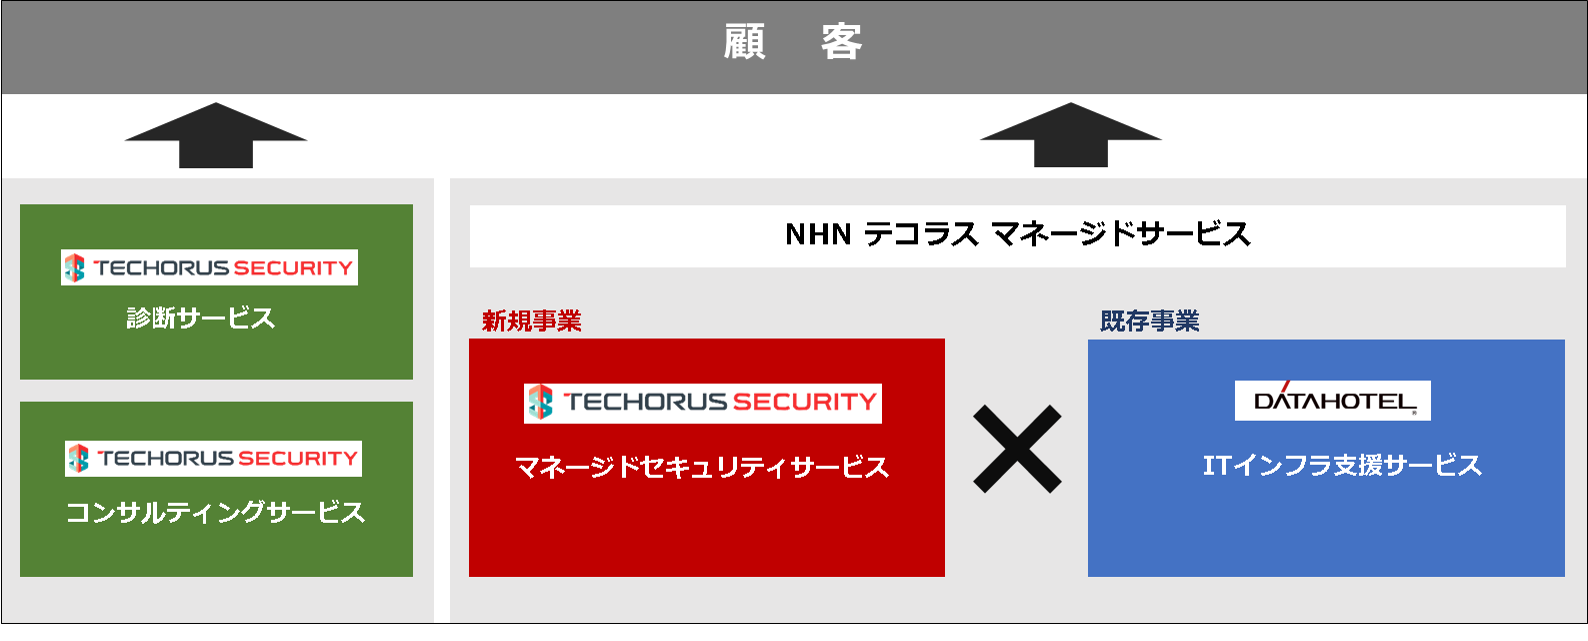 TECHORUS SECURITY Image